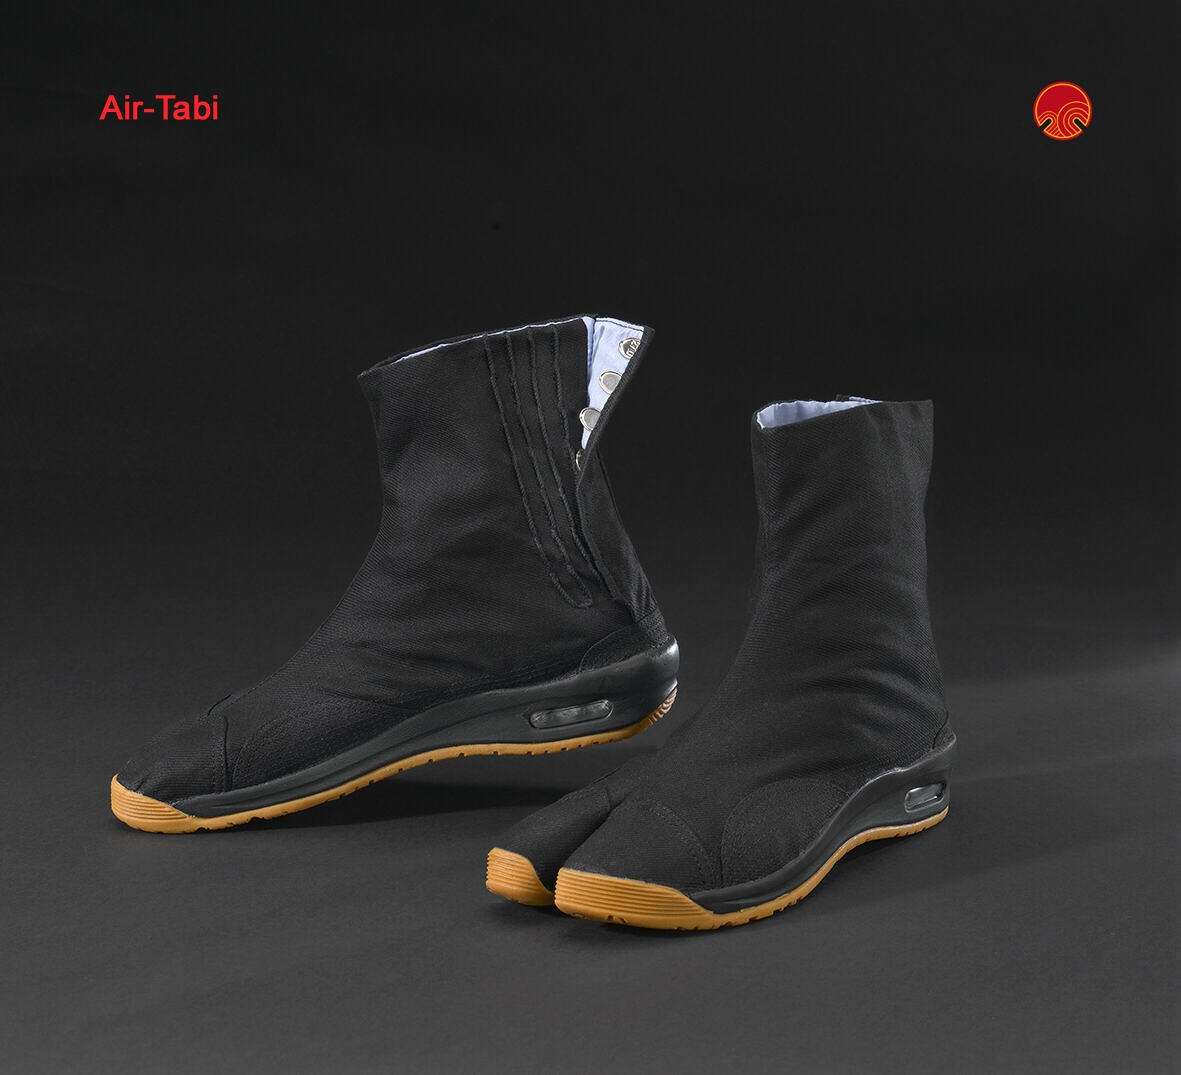 Japanese Matsuri Air Tabi-Shoes in black (55,00€)